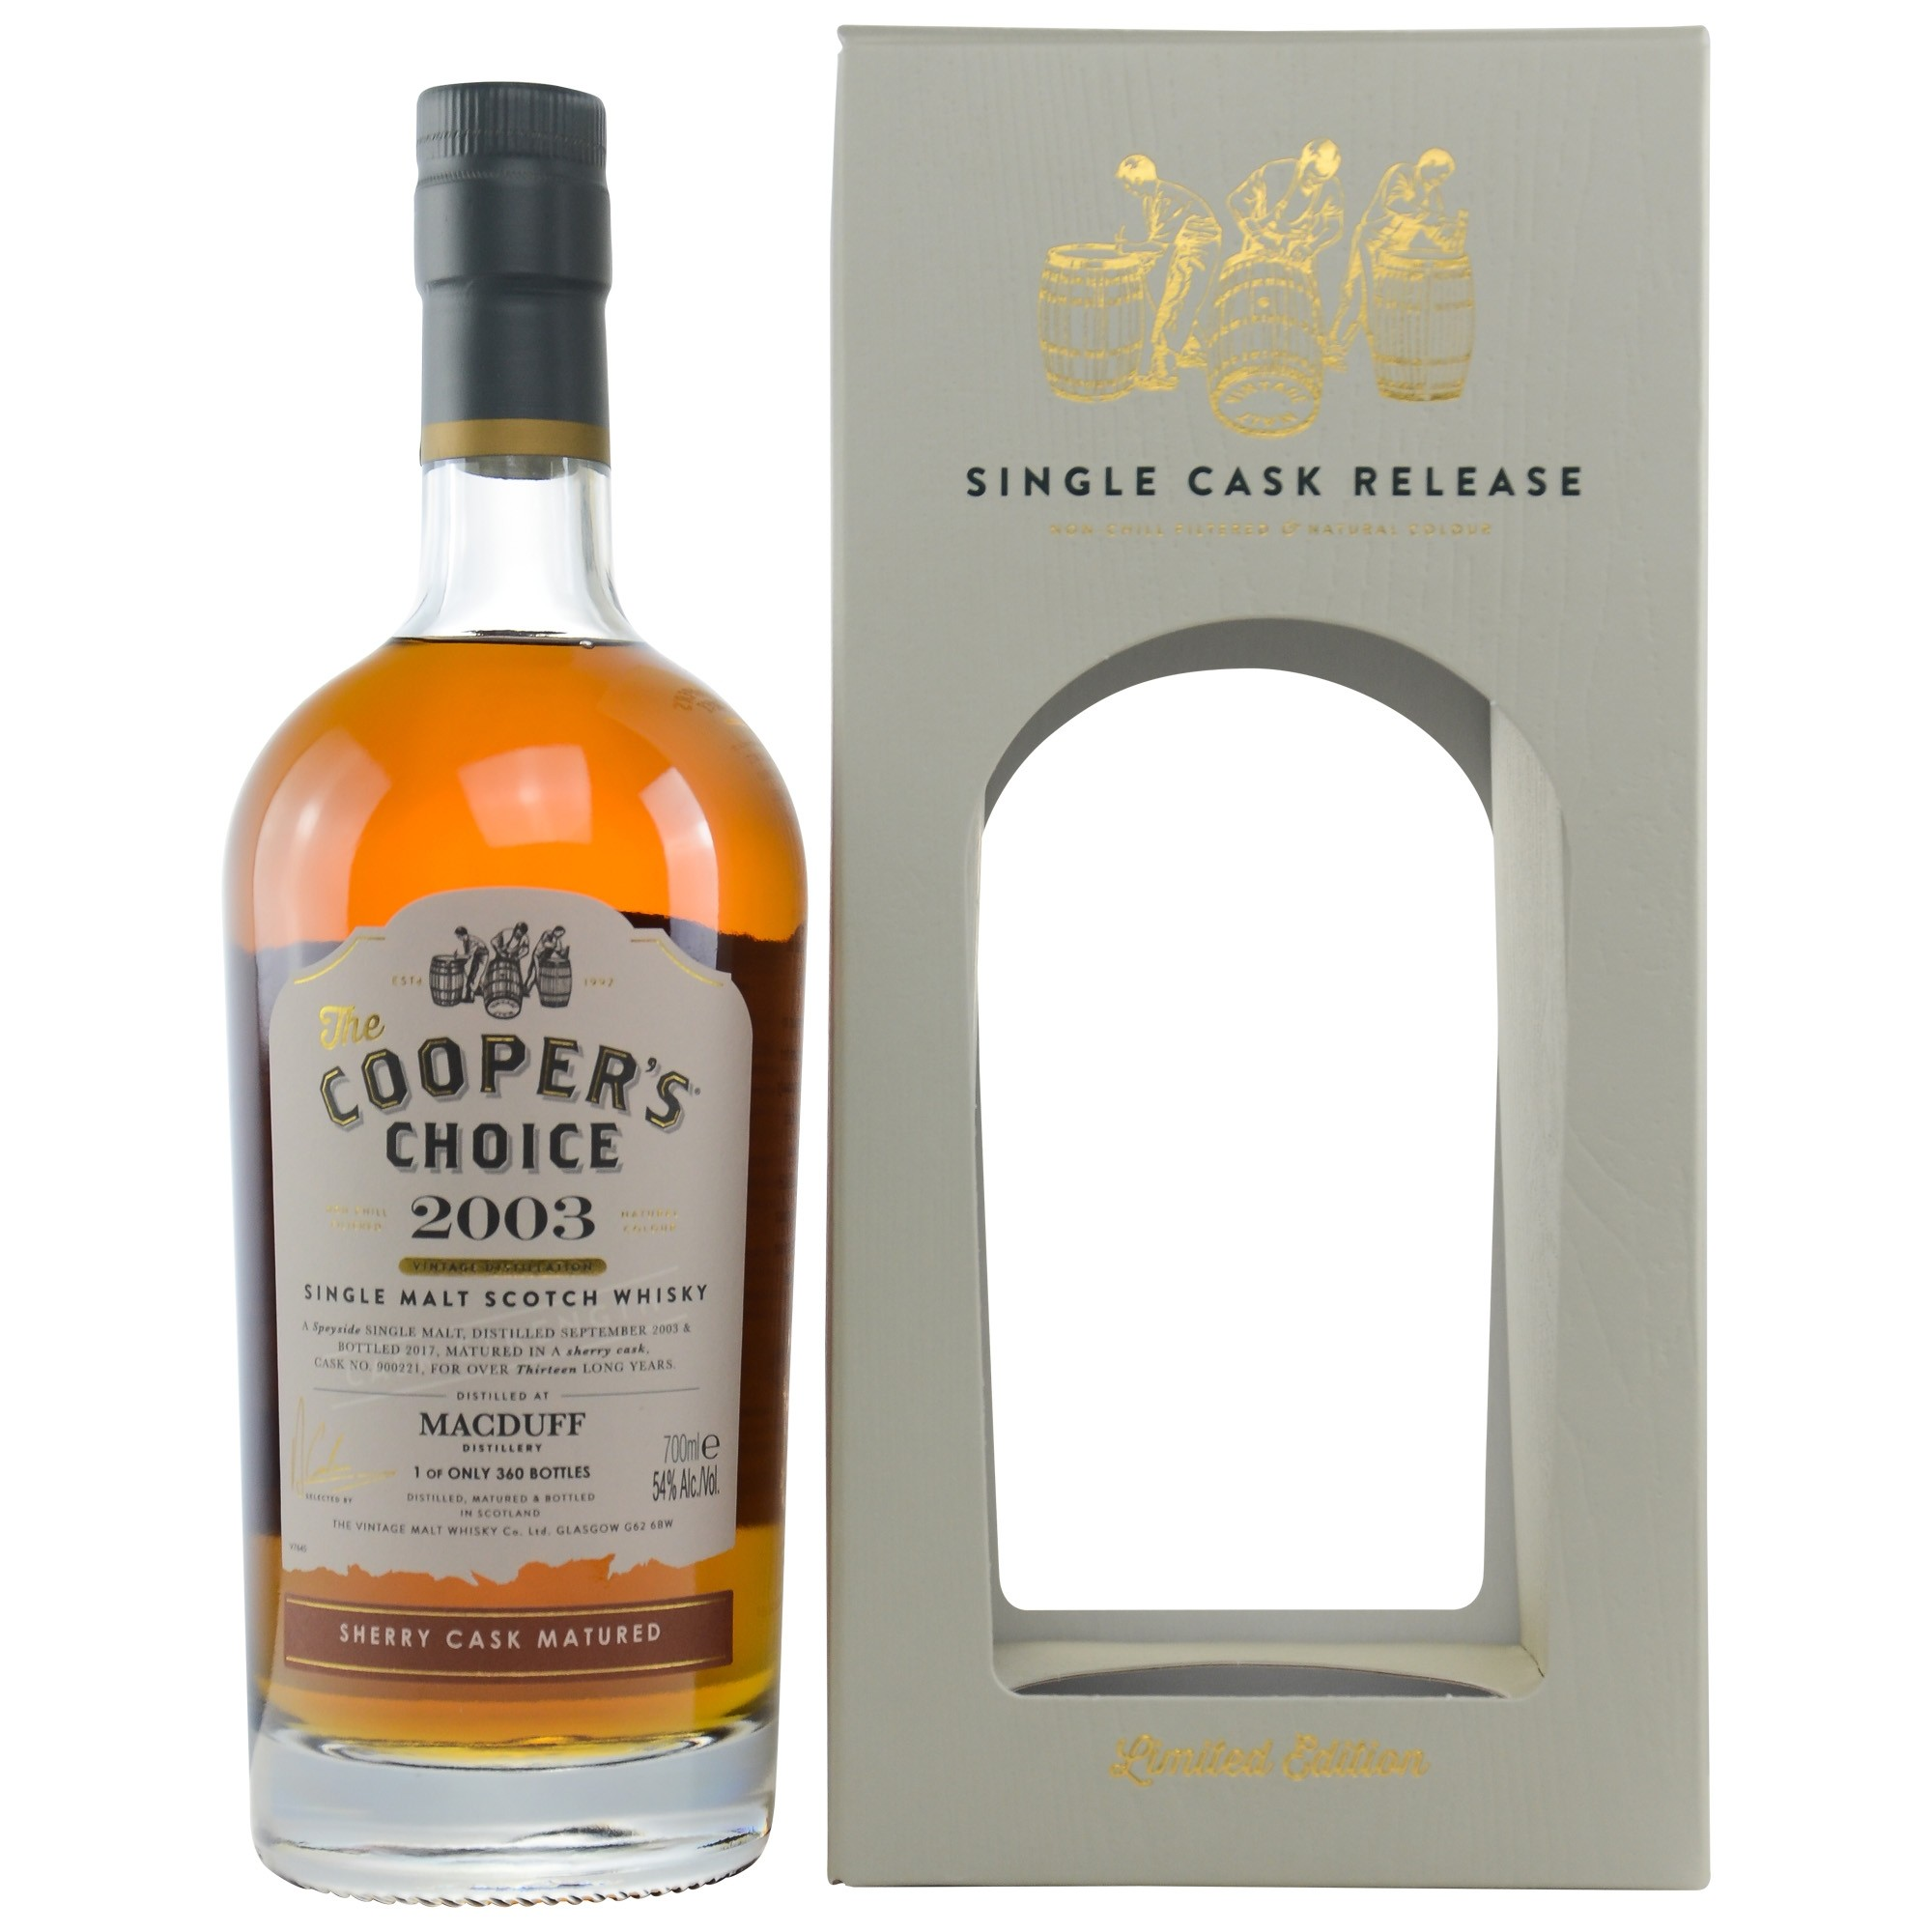 Macduff 2003/2017 Sherry Cask Matured Cask 900221 (Vintage Malt Whisky Company - The Coopers Choice)